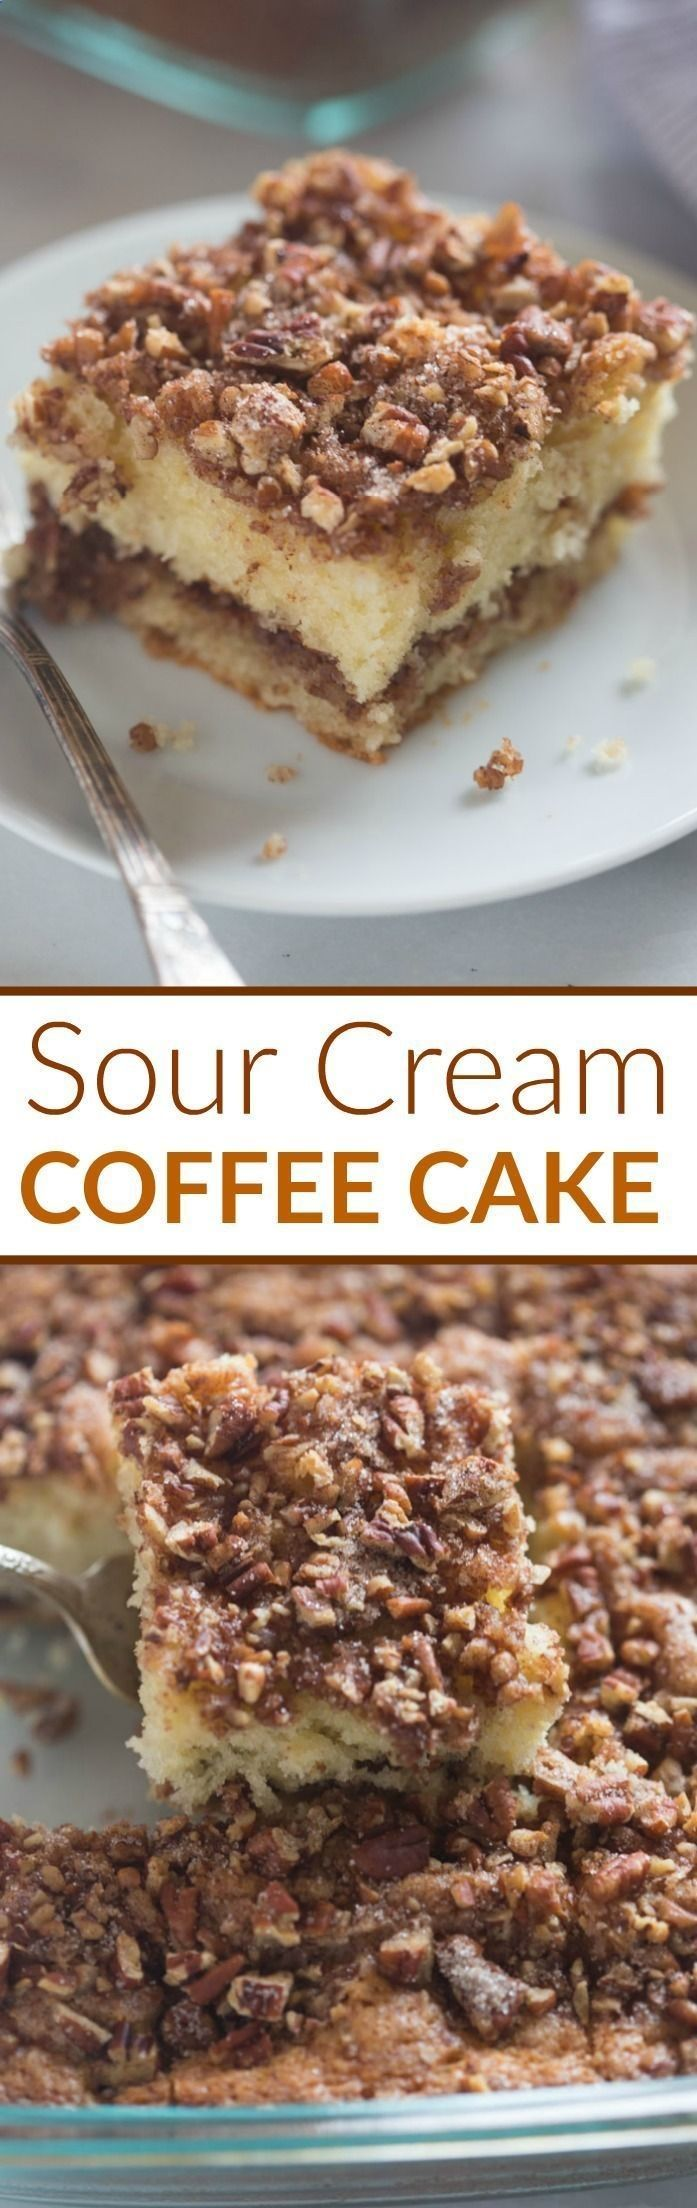 This Sour Cream Coffee Cake is not only incredibly EASY to make, its absolutely delicious! A tender crumb cake with cinnamon pecan topping. You wont be able to stop at just one piece.| Tastes Better From Scratch (Bake Ideas Sour Cream)